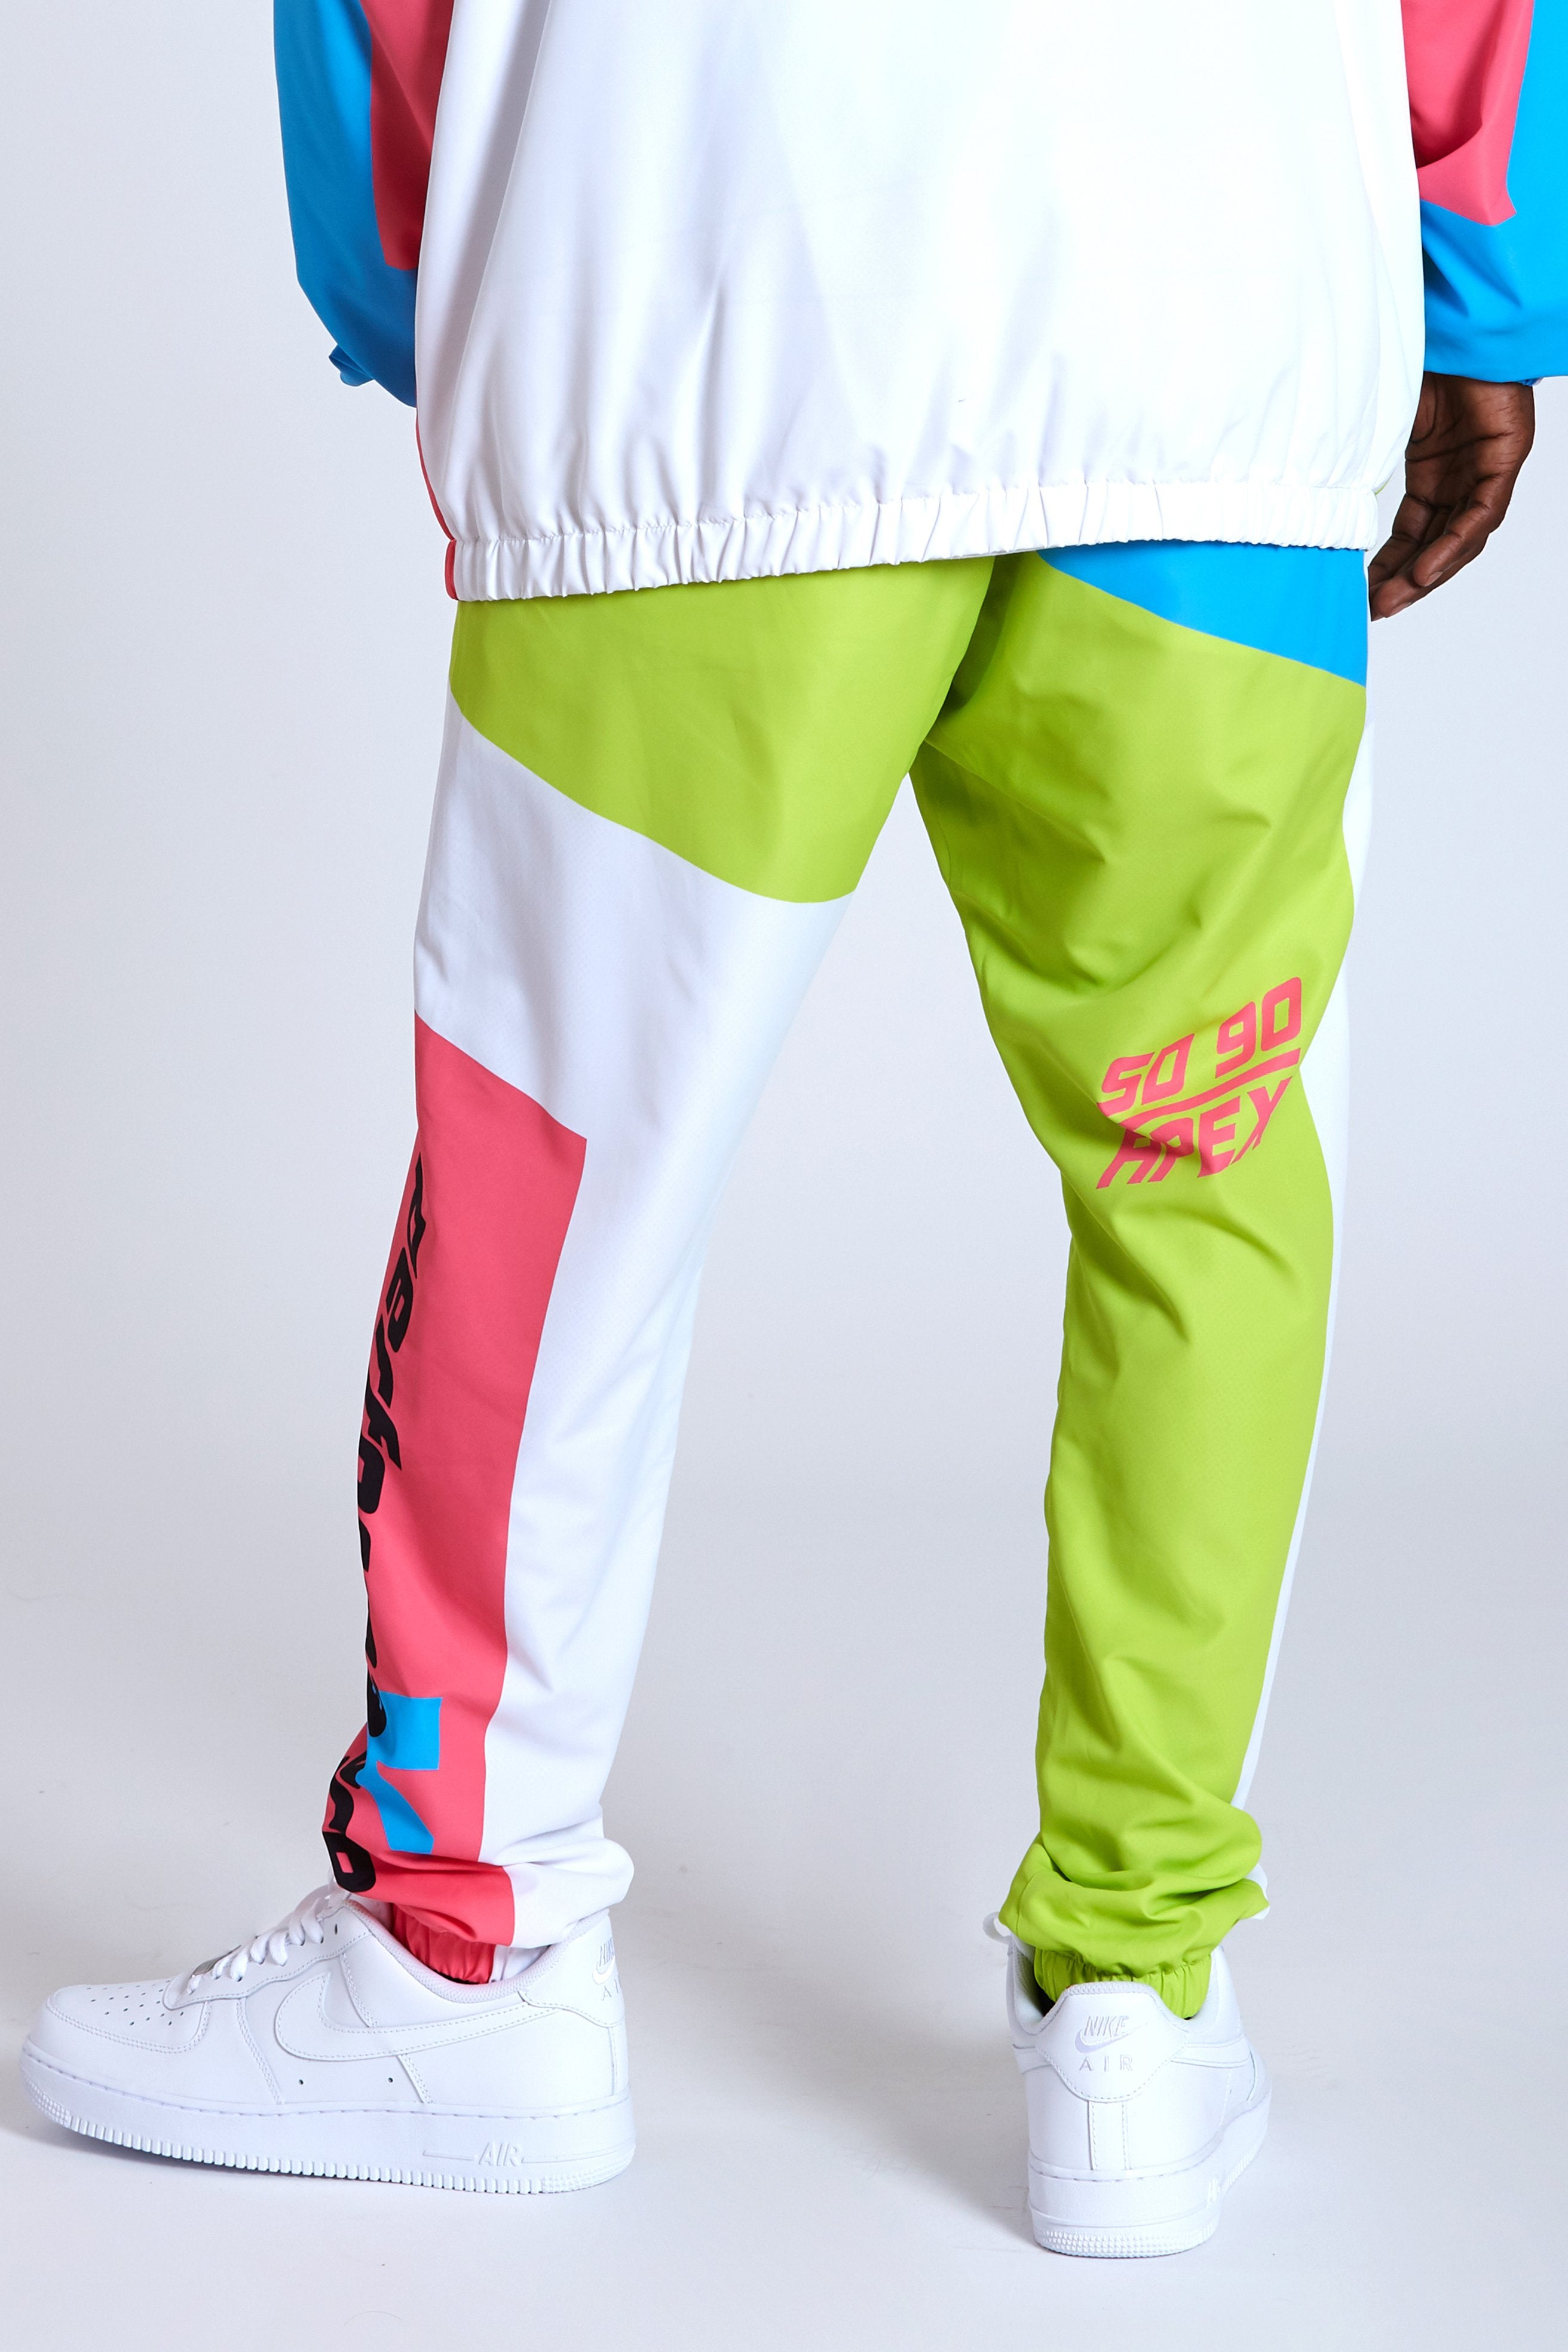 DOPE 100% Polyester windbreaker pants with elastic jogger ankle. #Blue/Green